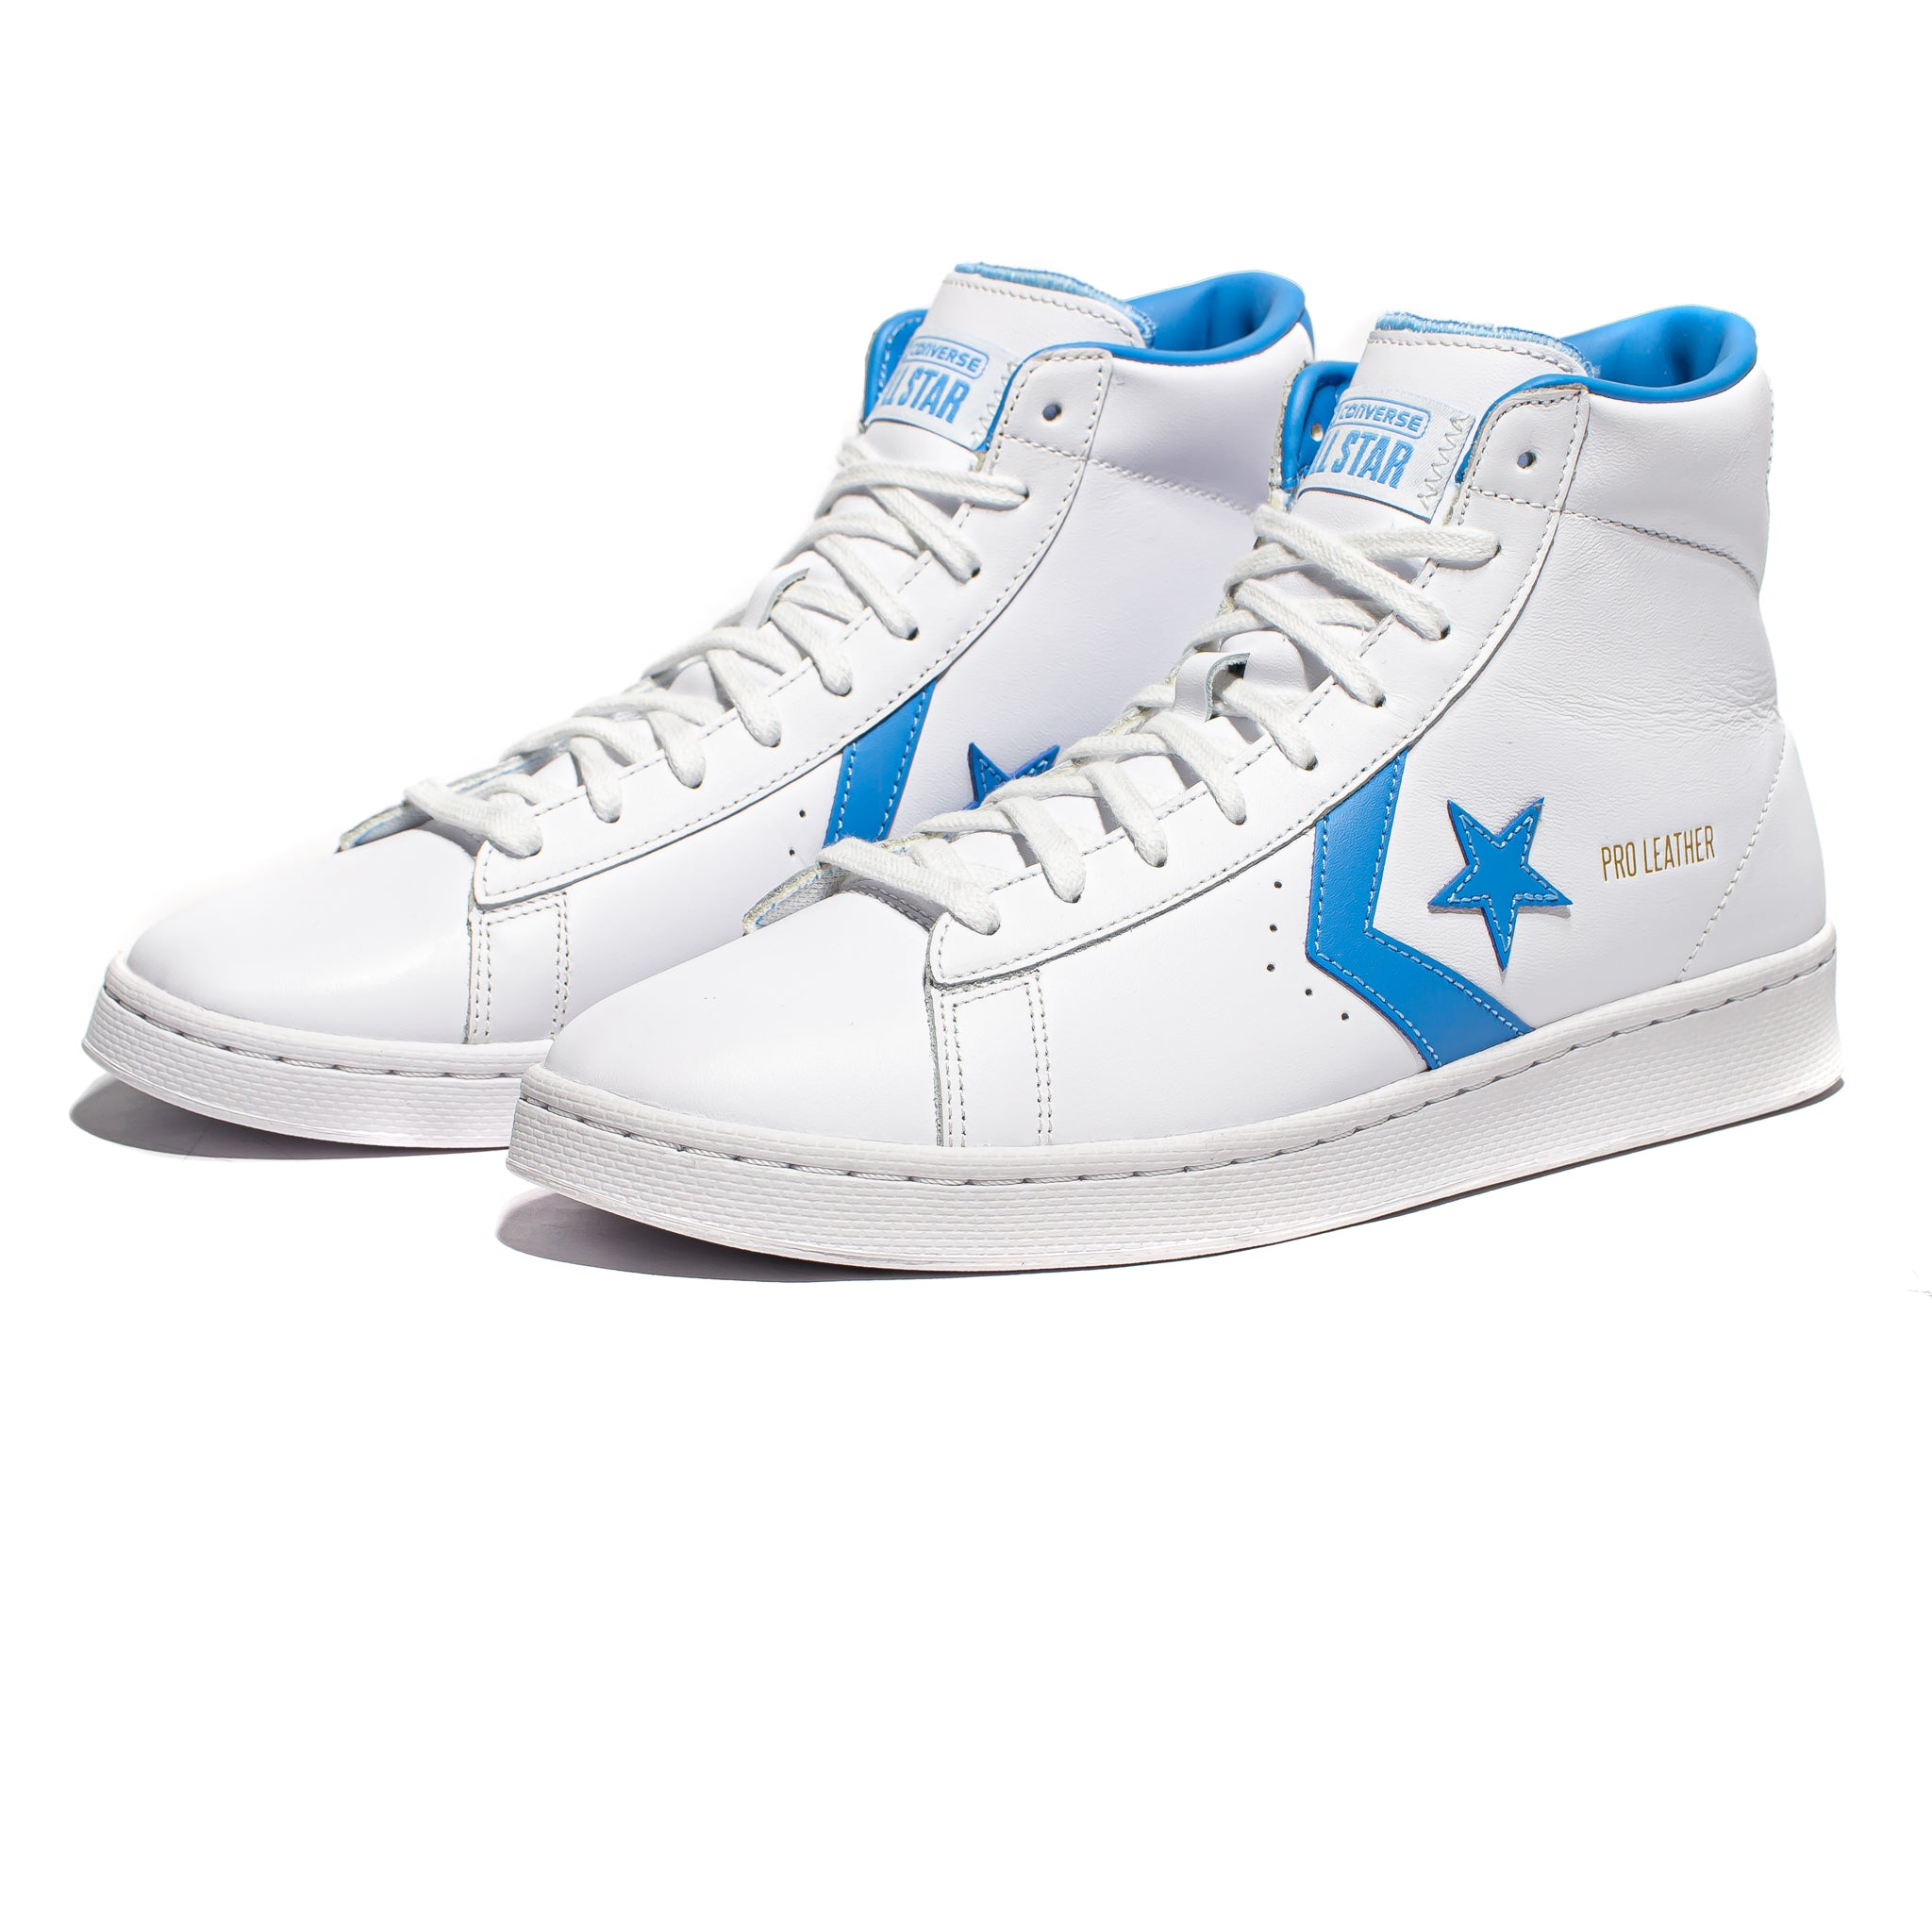 Converse Pro Leather Mid - White/Coast Blue